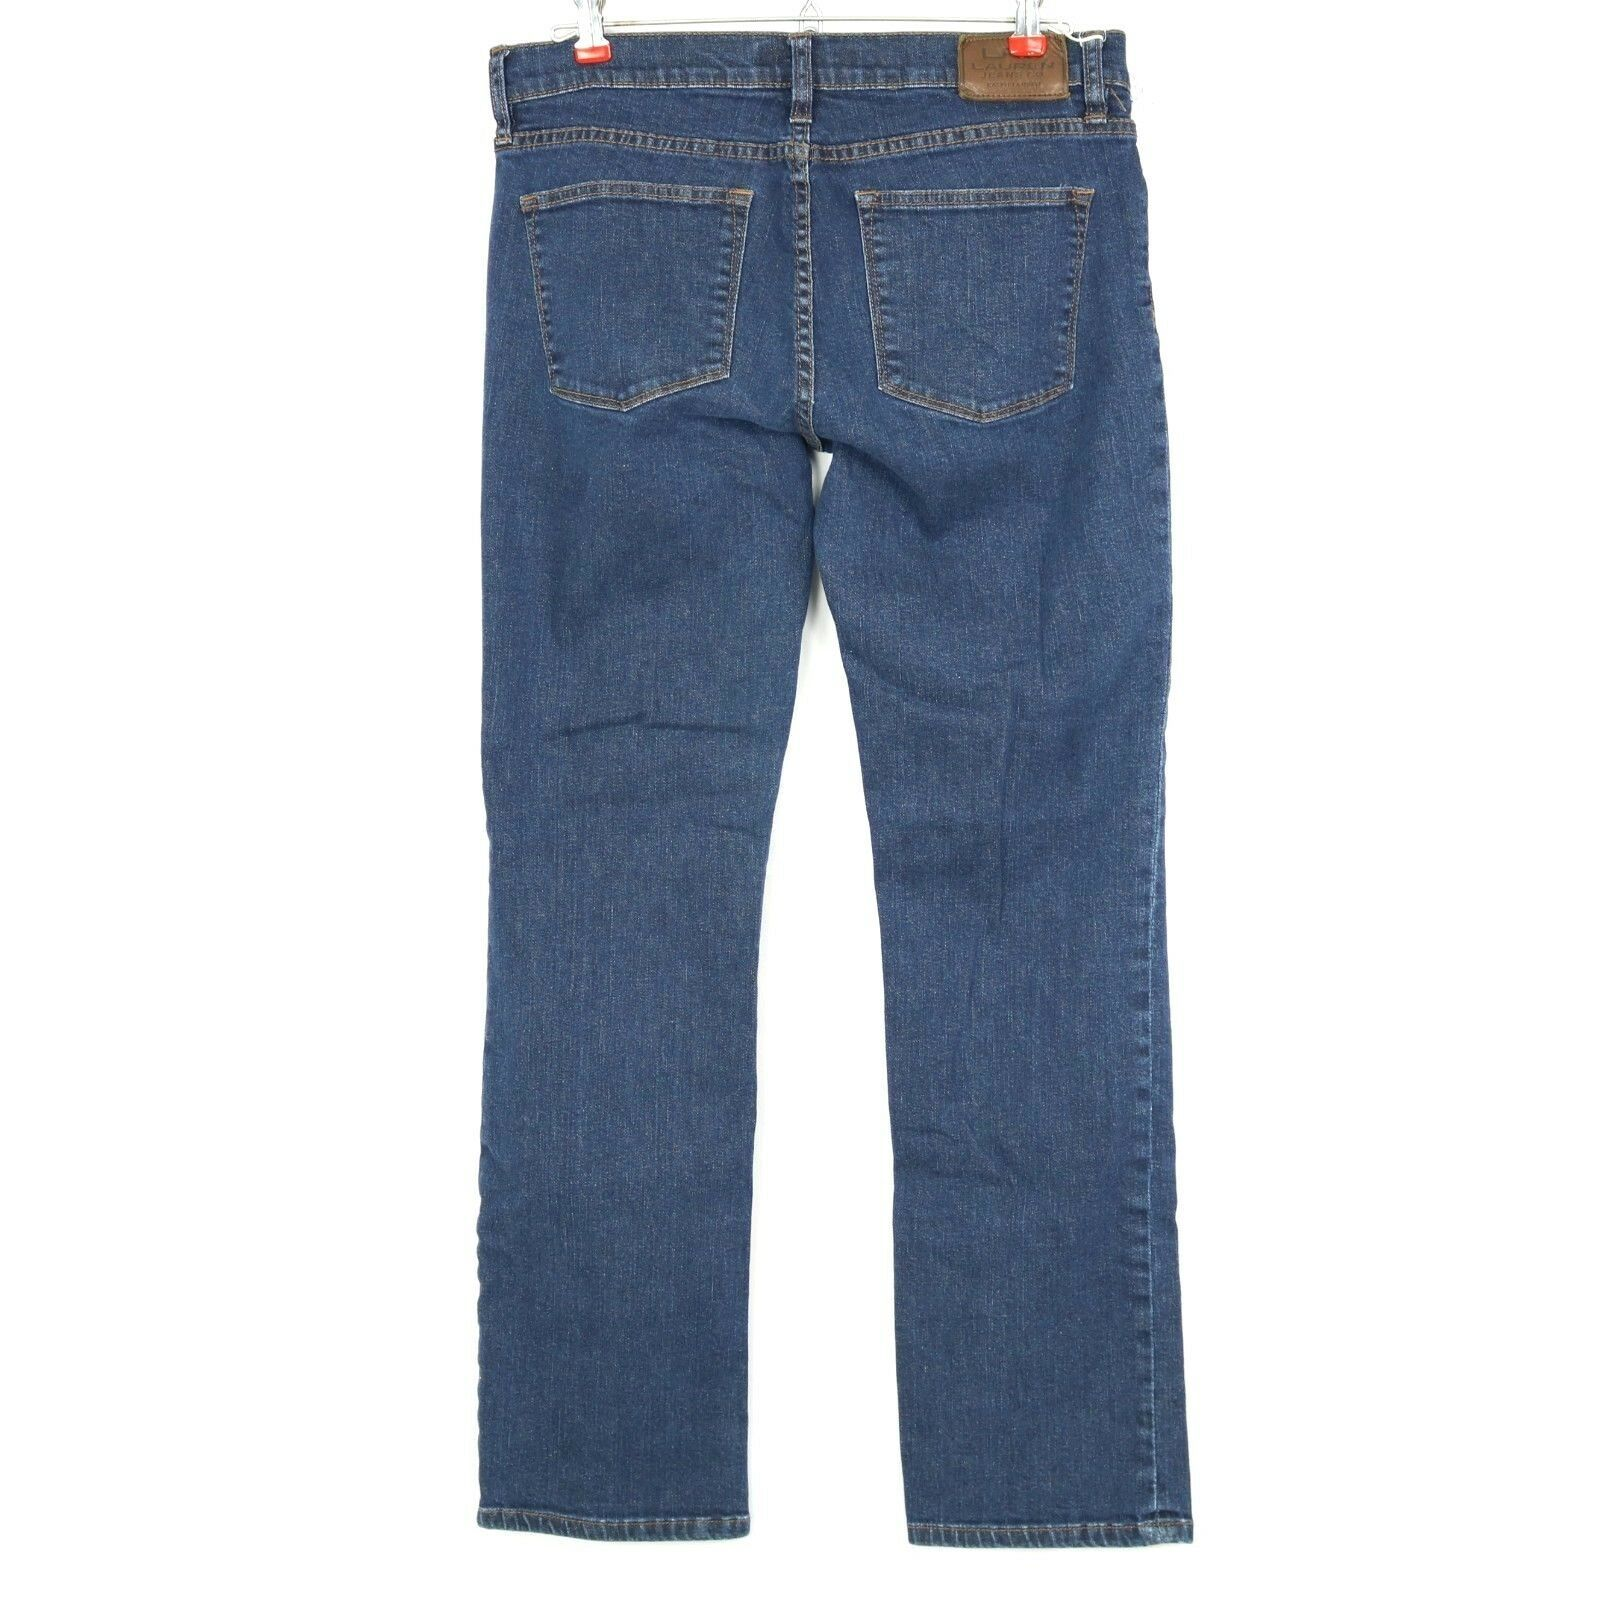 9009cf693fa 57. 57. Previous. Lauren Ralph Lauren Womens Jeans Modern Straight Size 8 X  29 Stretch Dark